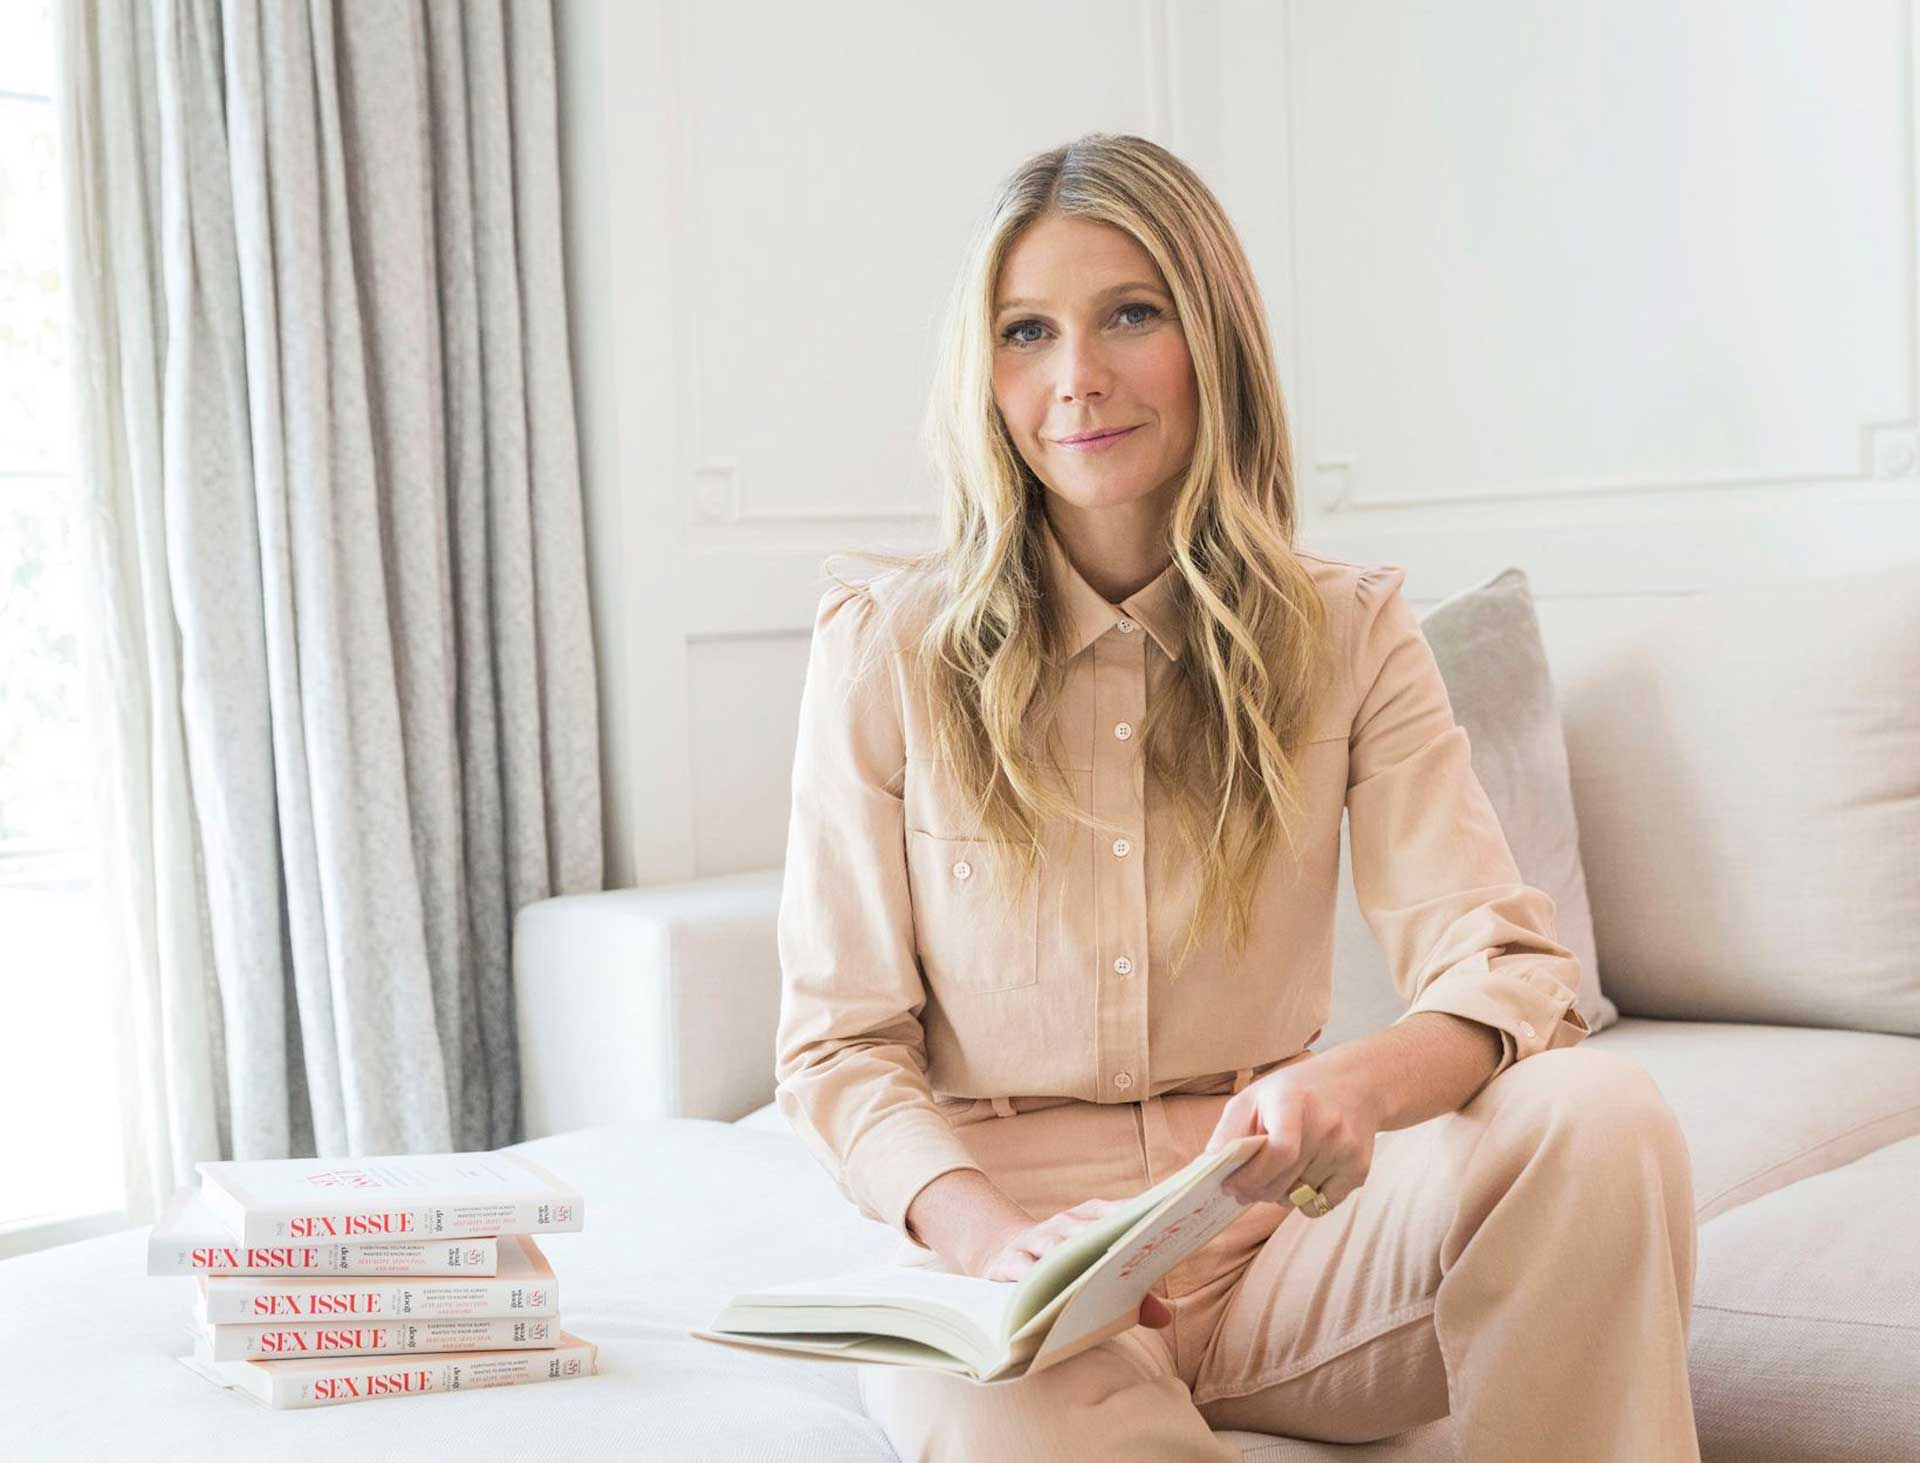 THE-SEX-ISSUE-libro-sul-sesso-di-Gwyneth-Paltrow